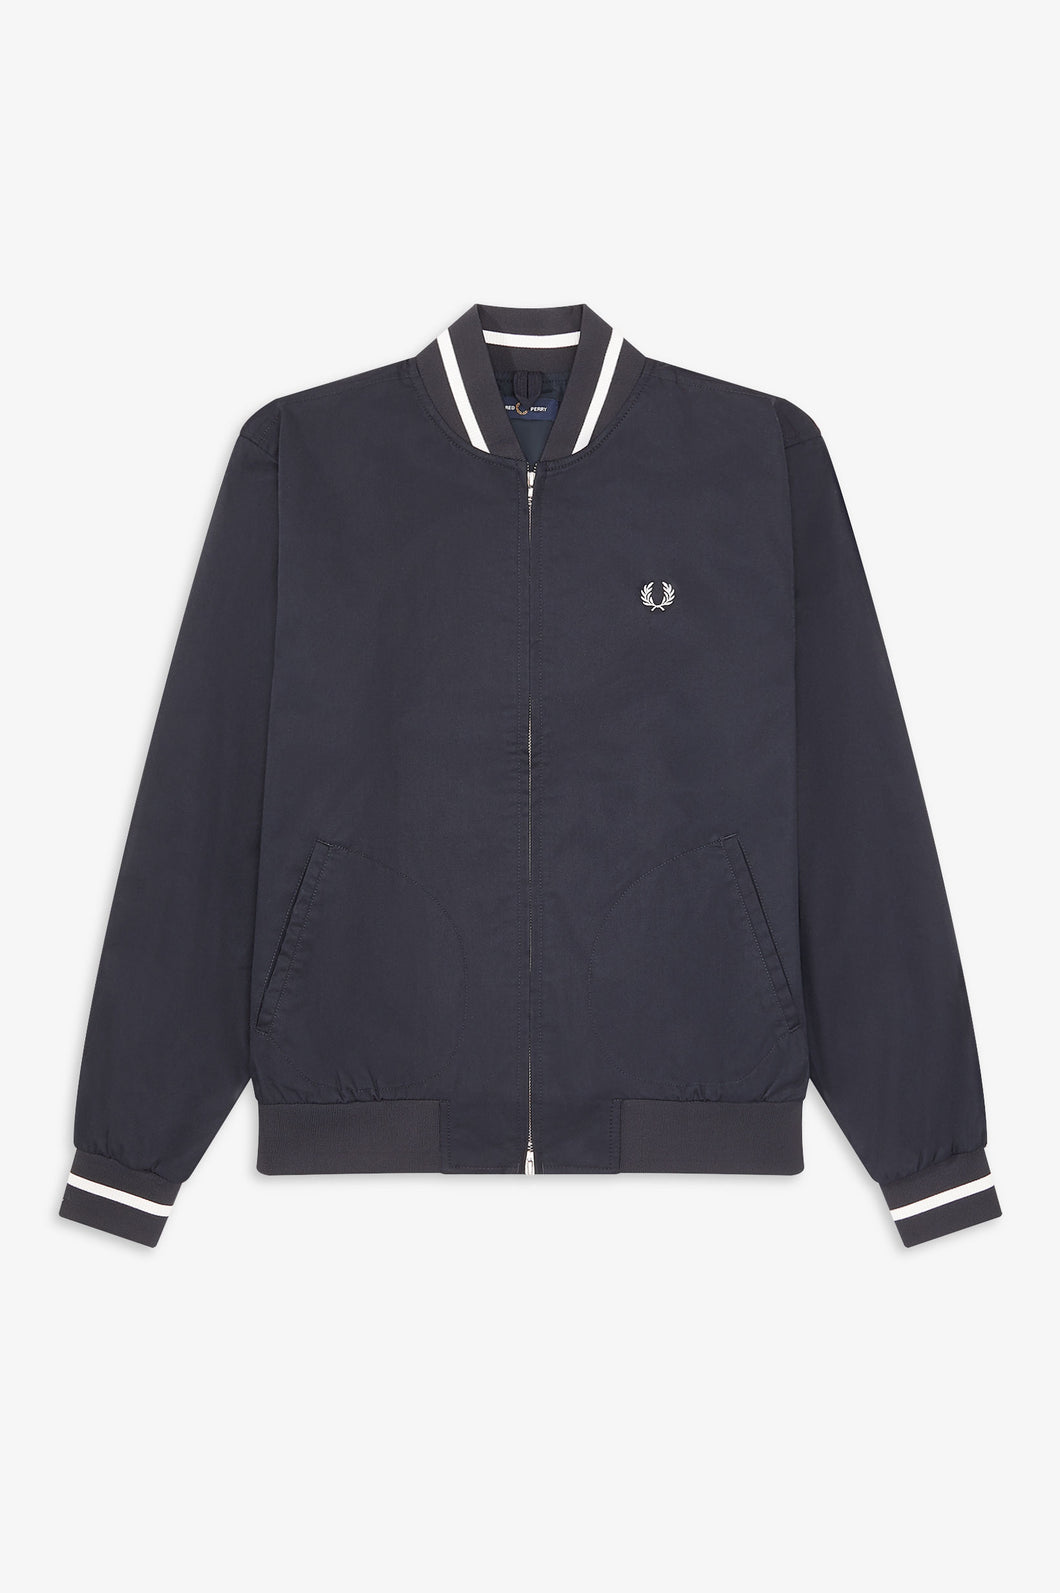 Tennis Bomber Jacket (navy)